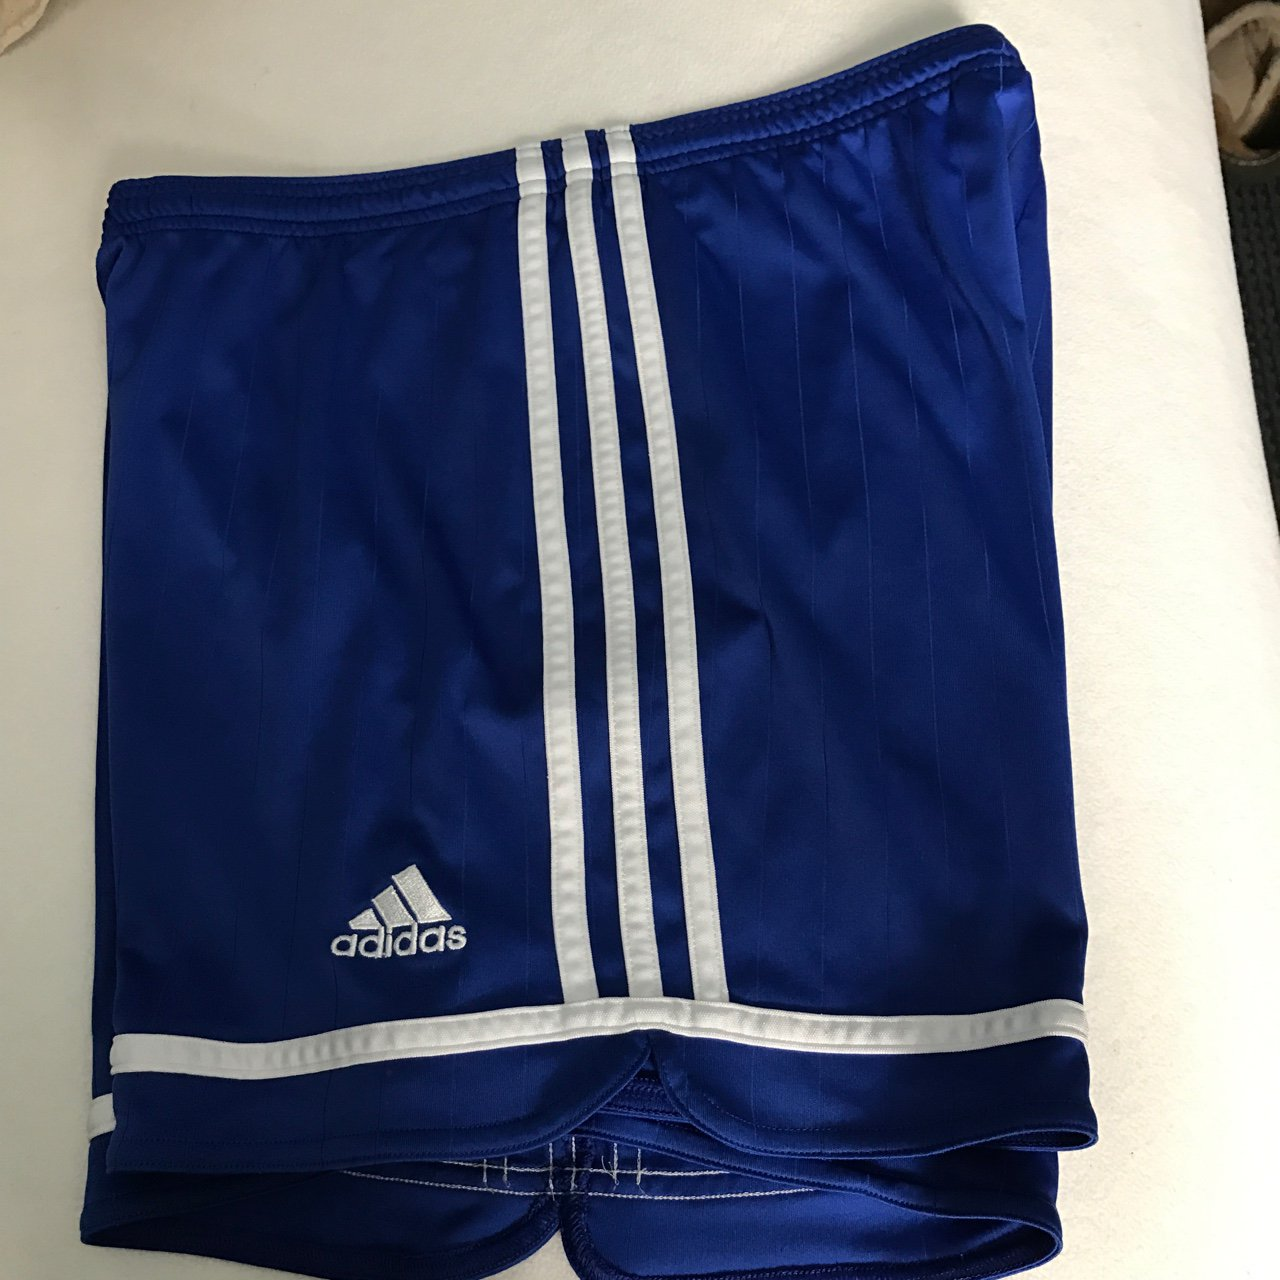 Vivid With A Blue Shorts School Fits Royal Sport Depop Adidas Old wxSWqApHRn